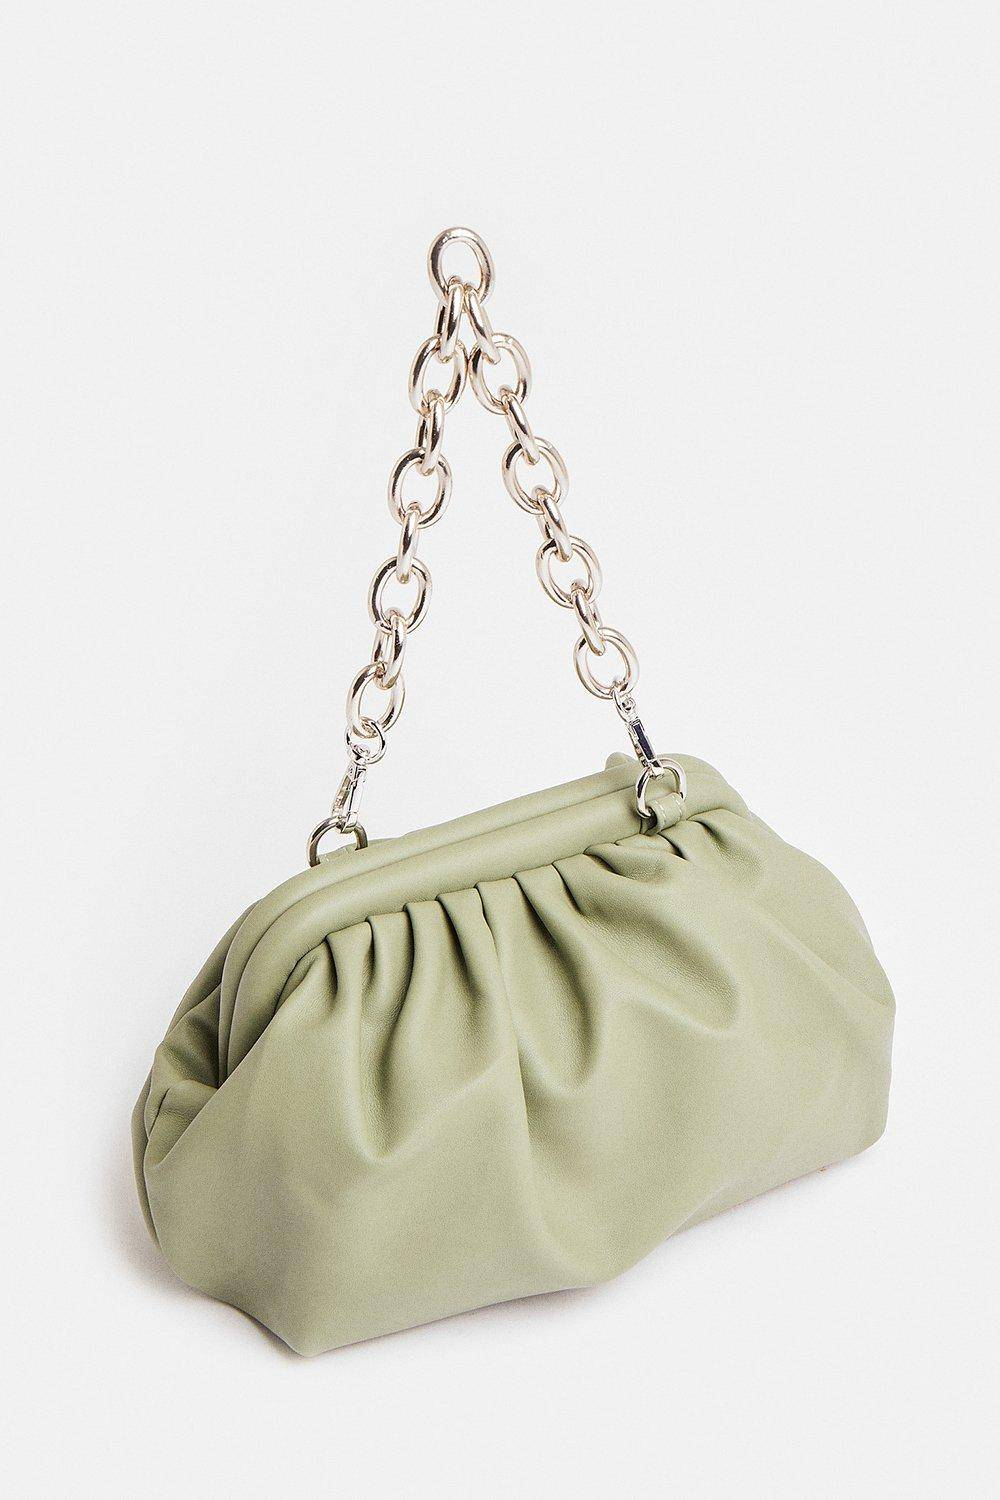 Coast Chain Strap Slouchy Shoulder Bag -, Olive  - Size: One Size